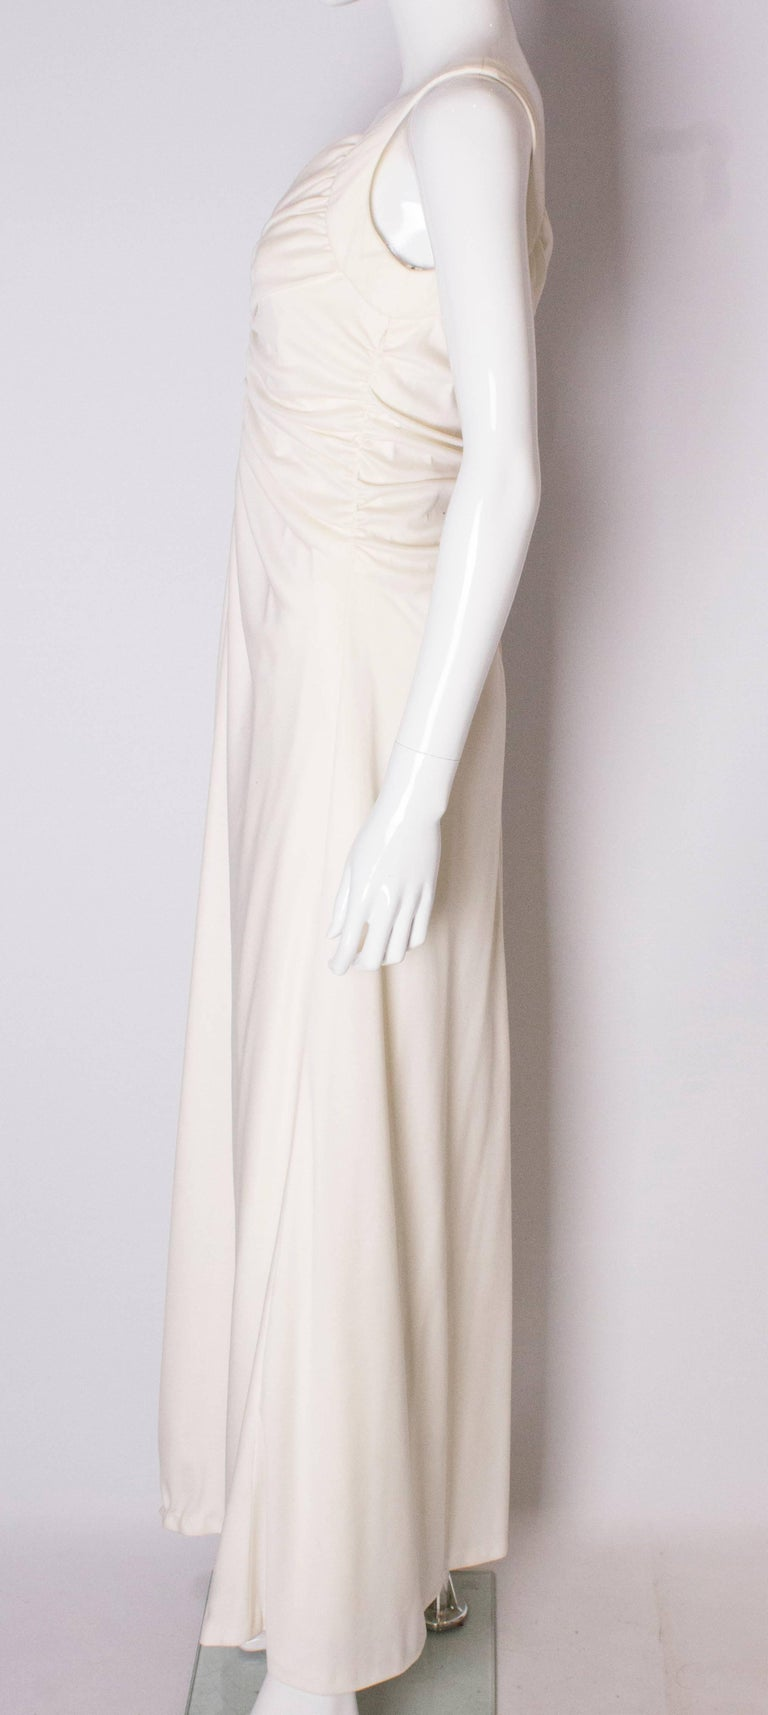 A Vintage 1970s cream evening dress by Maddison Avenue London  For Sale 1